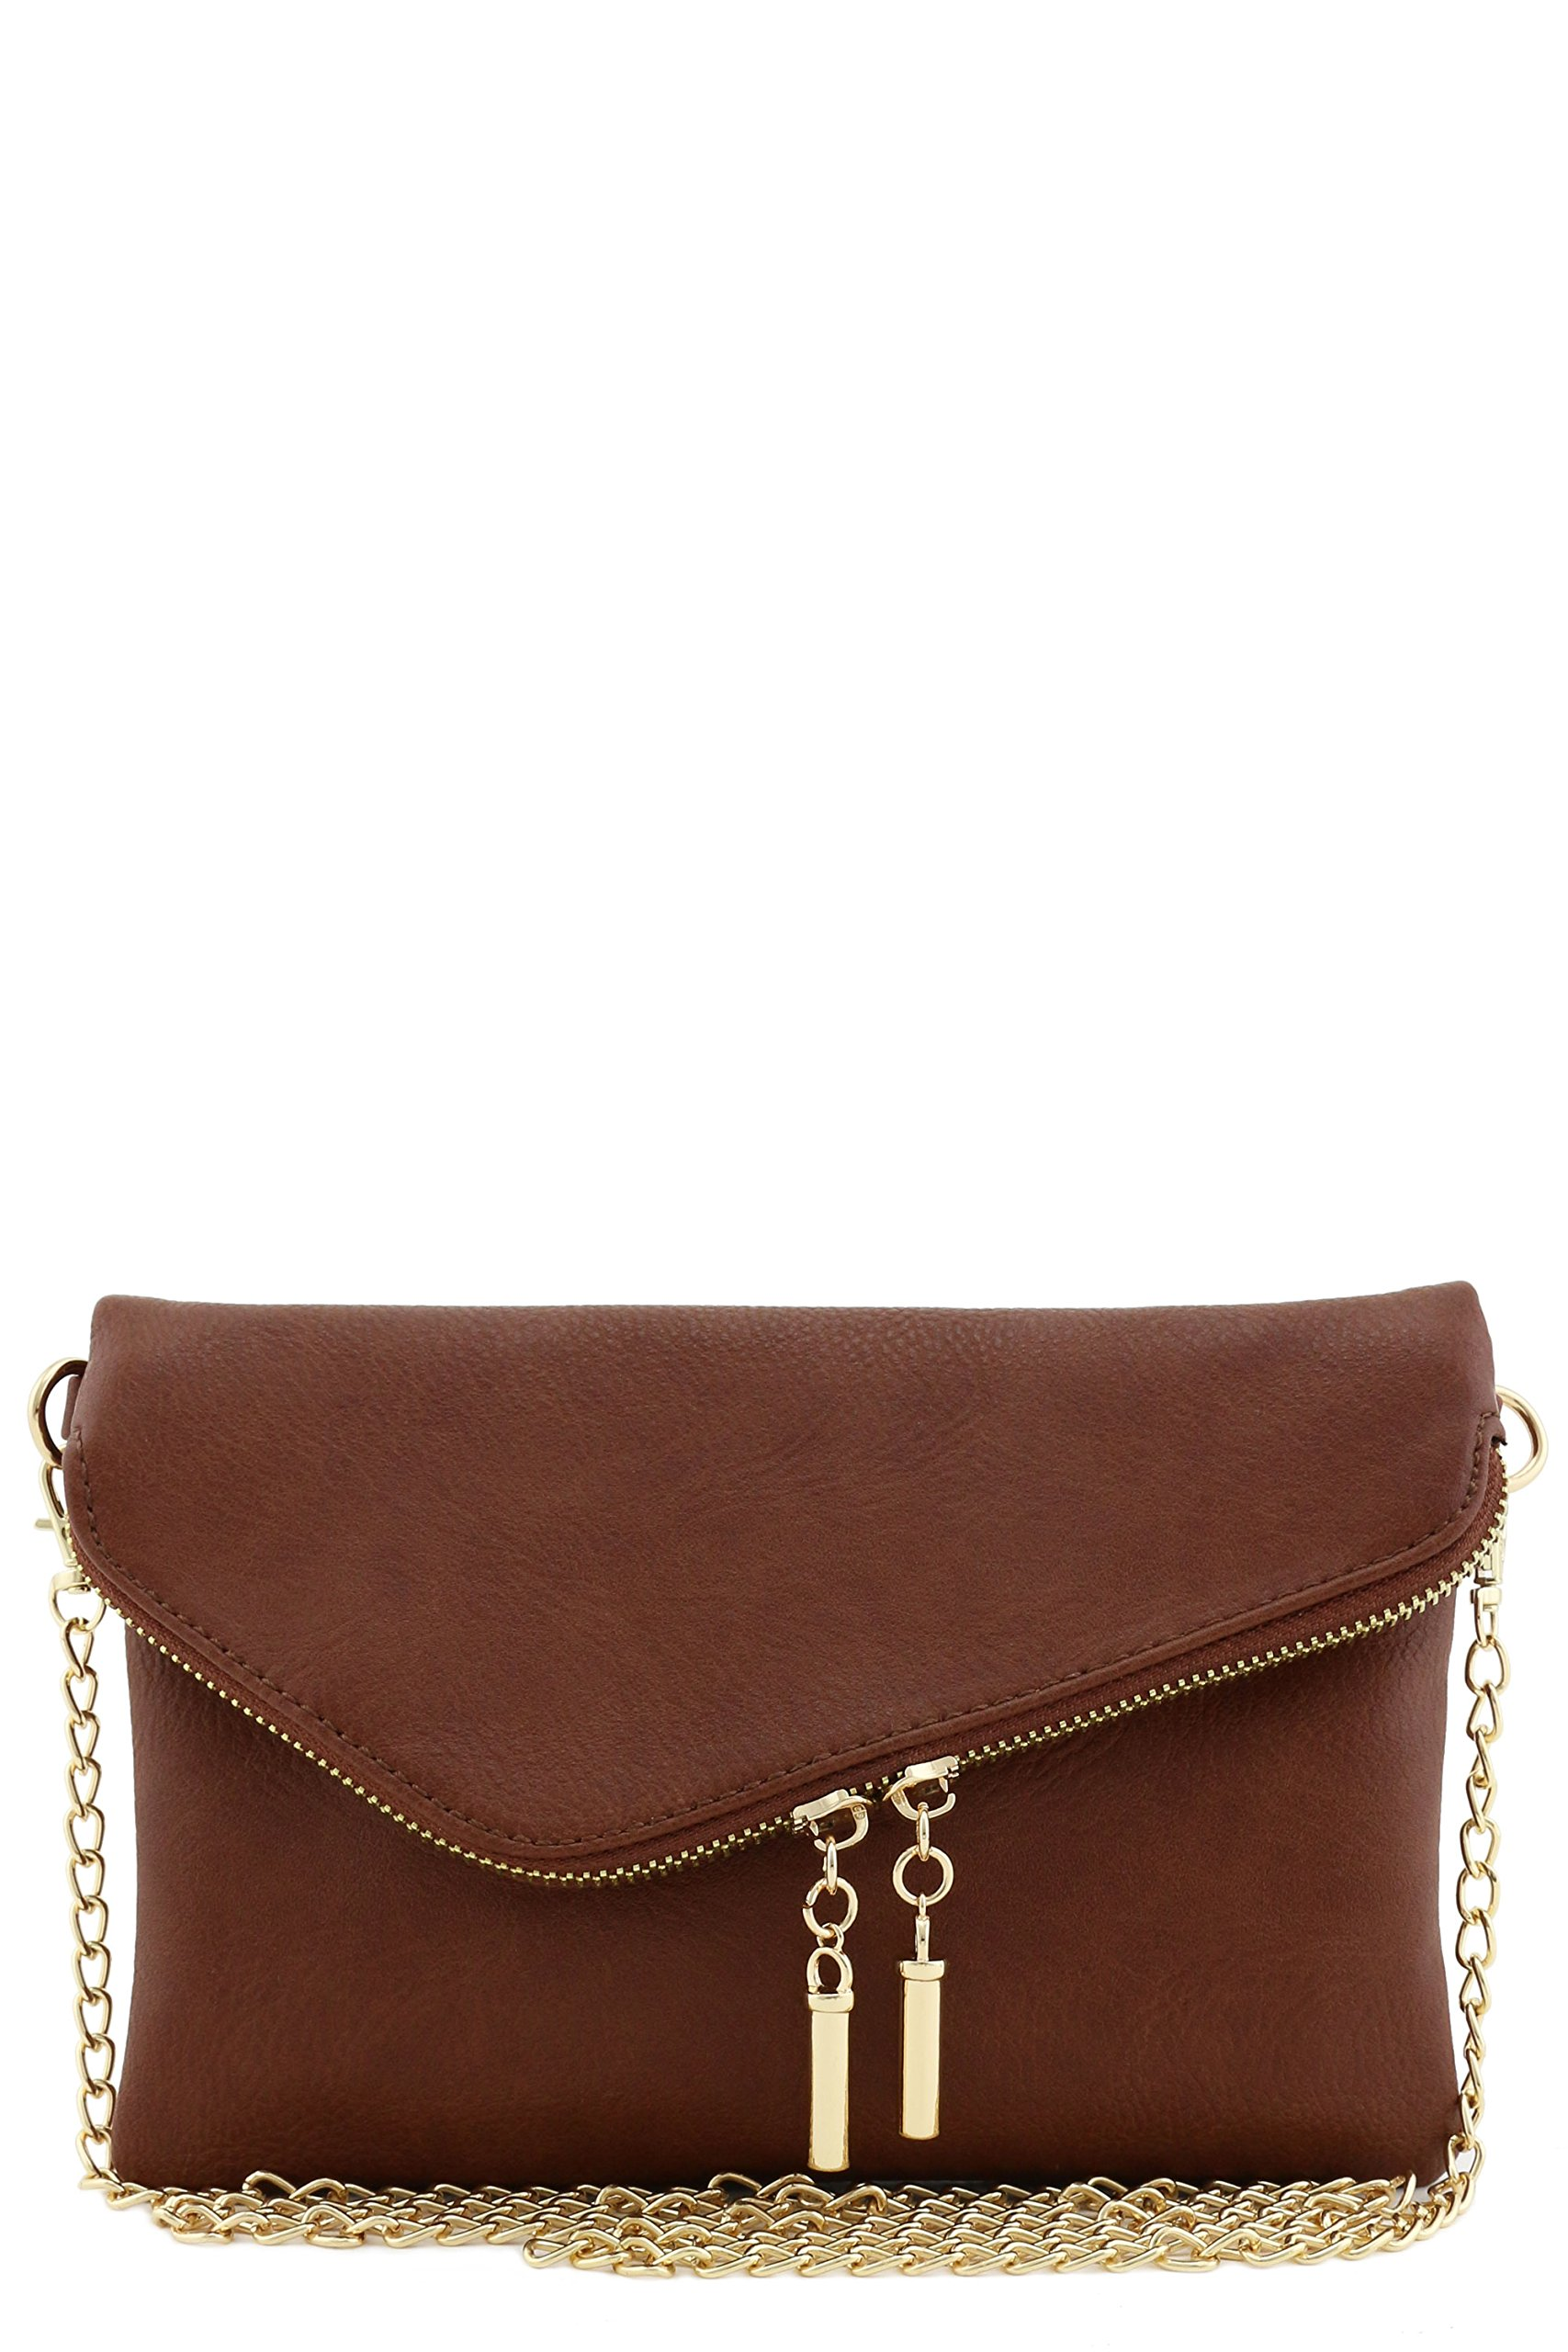 Envelope Wristlet Clutch Crossbody Bag with Chain Strap (Coffee)